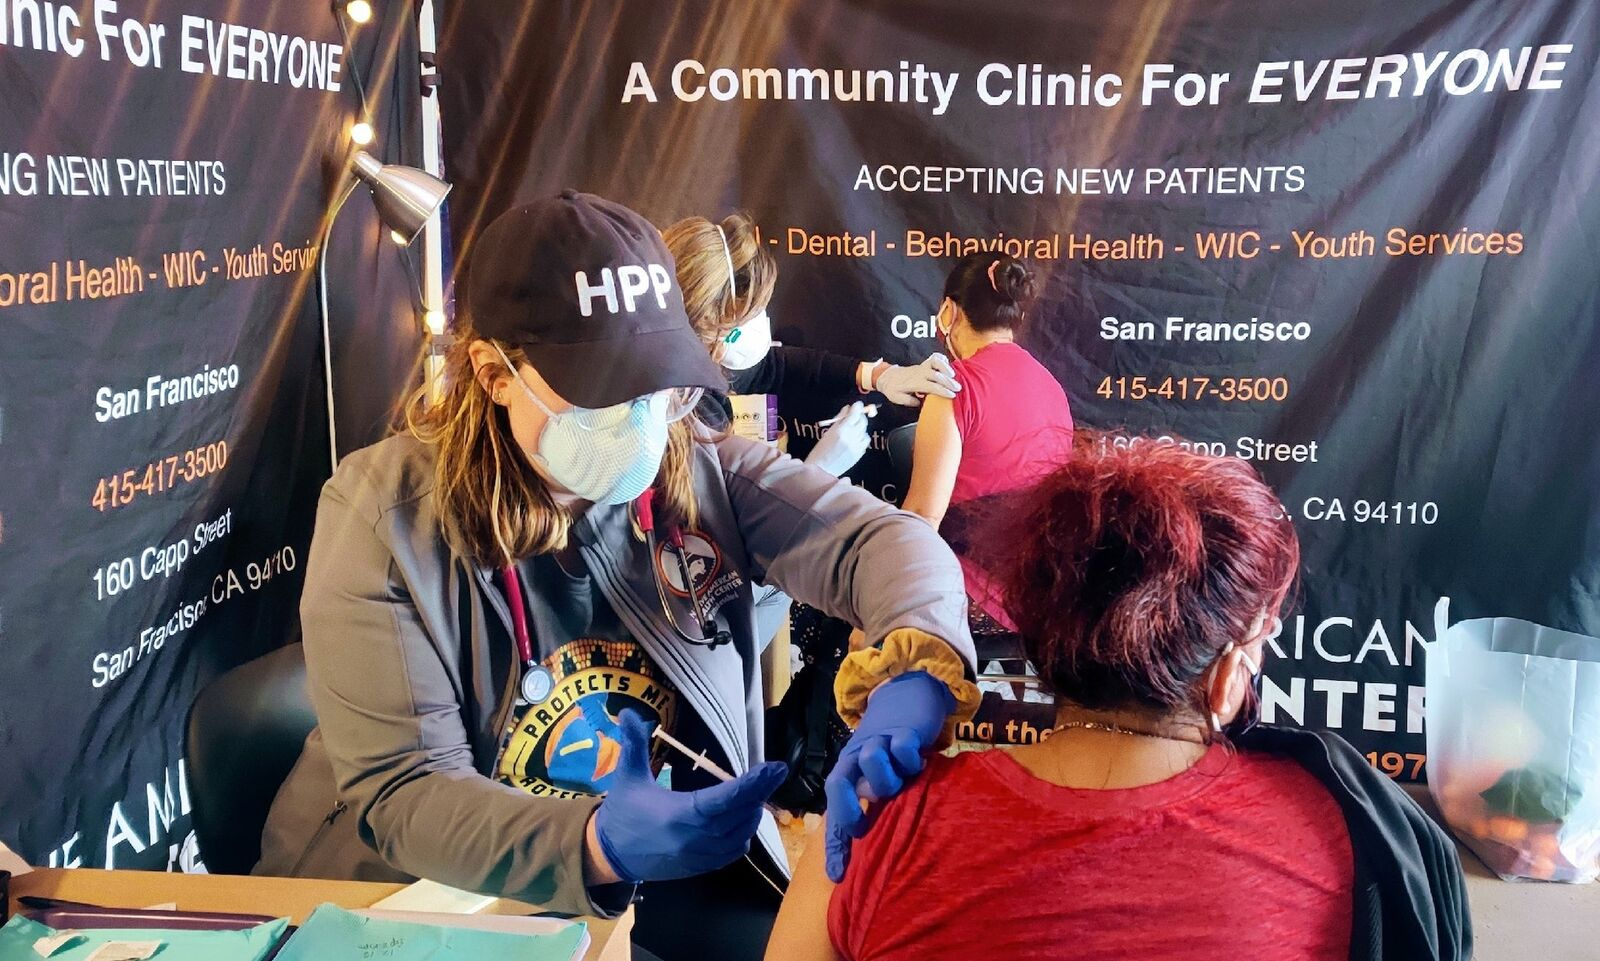 Current Jesuit Volunteers join forces to get a mobile clinic up and running through garnering a partnership between their two organizations.